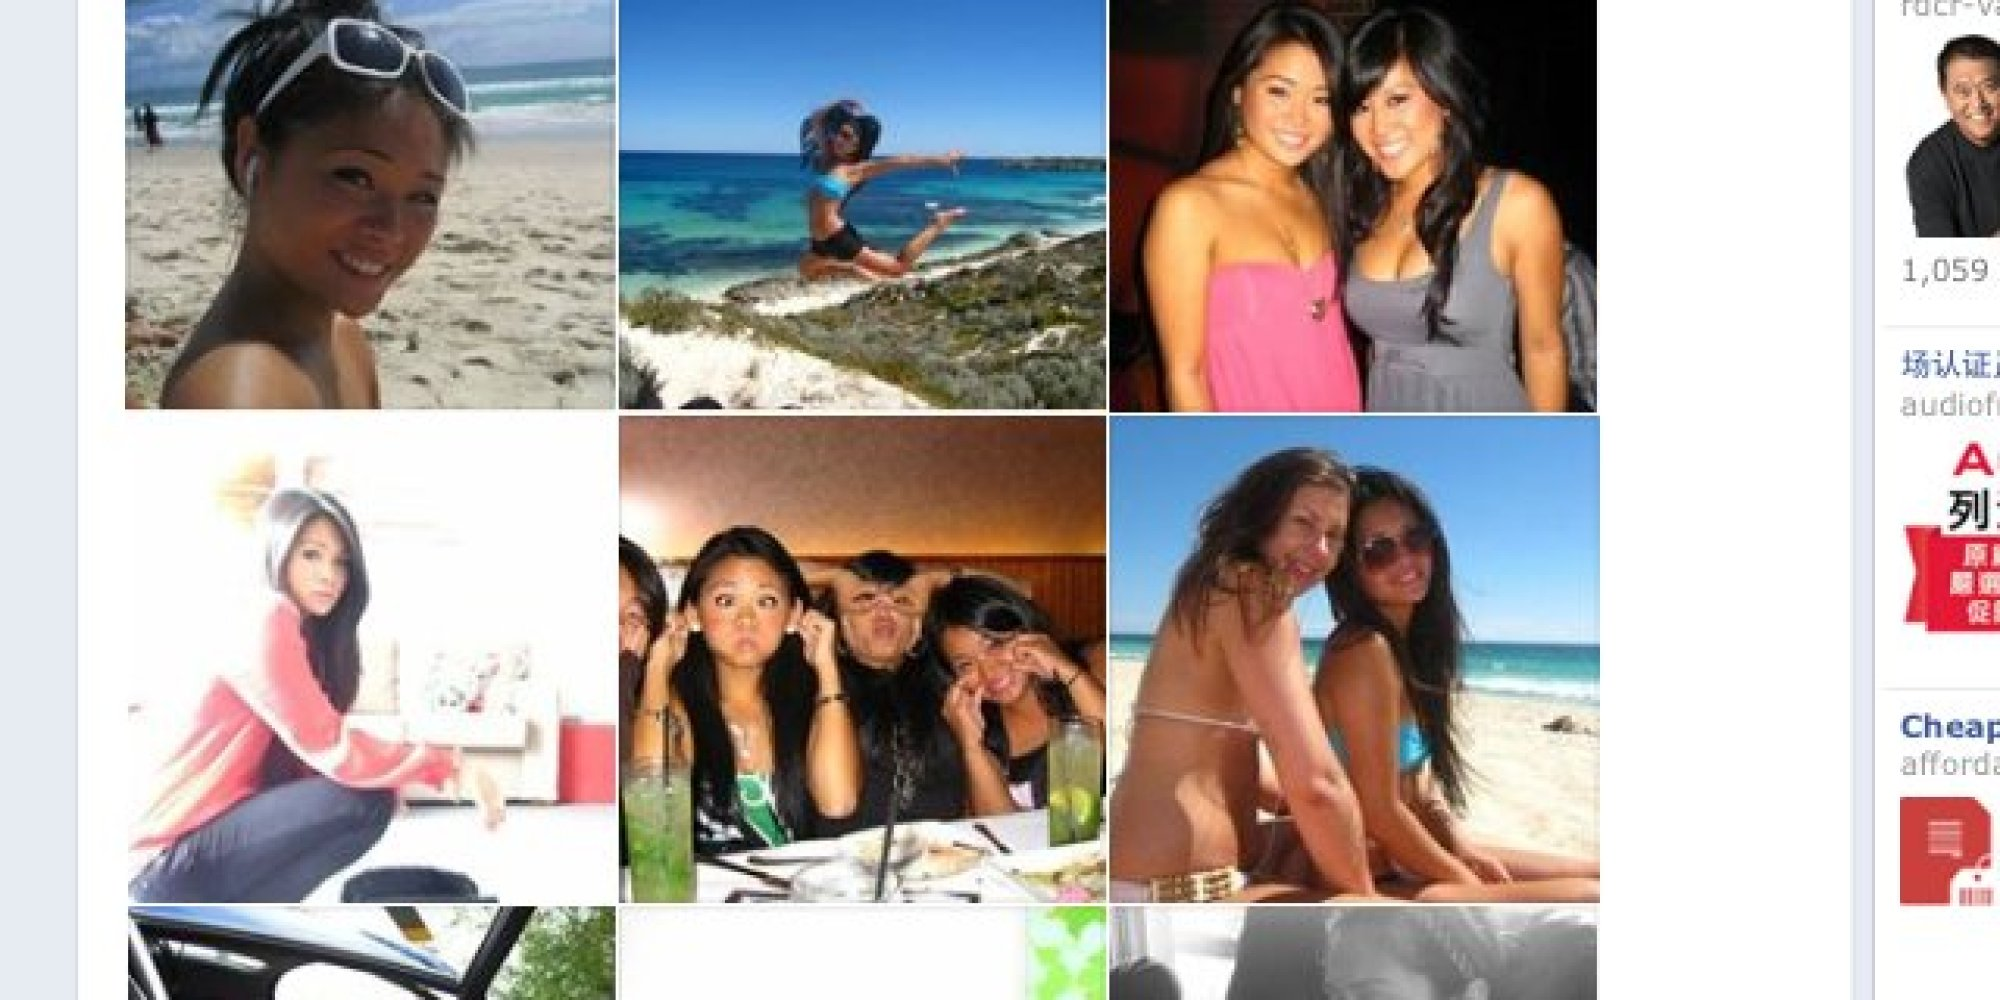 April Yau Catfished: Vancouver Woman's Photos Used For ...